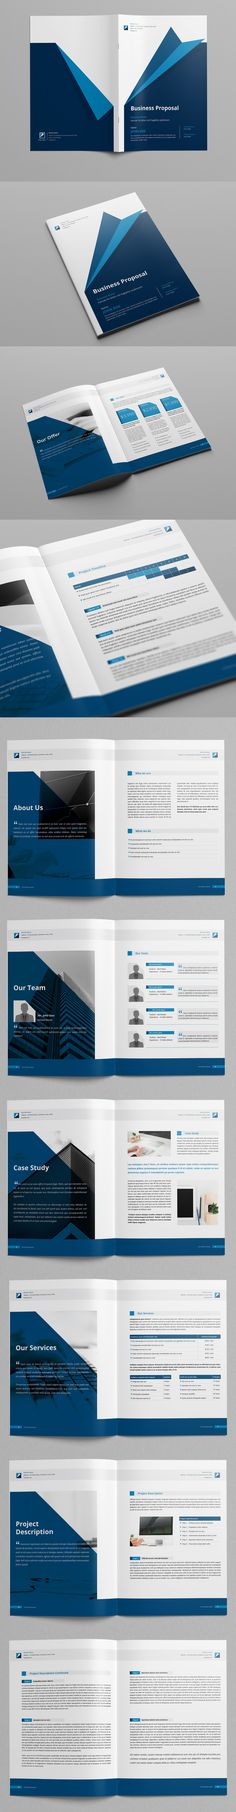 Sirisako Graphic Templates Online (Sirisako_template) on Pinterest